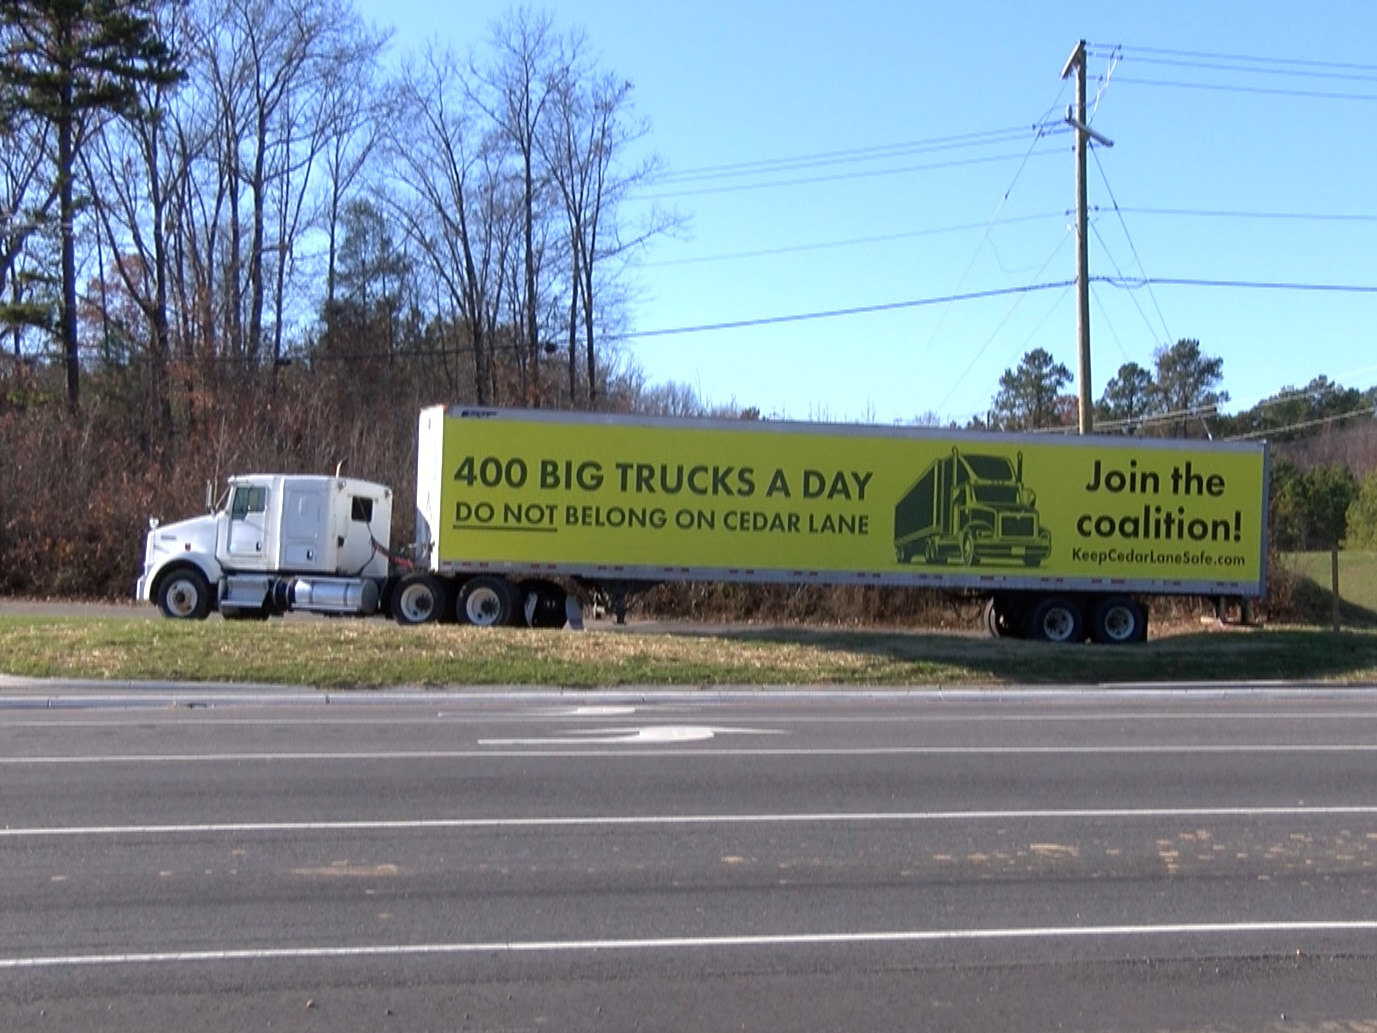 Residents concerned about potential truck traffic on quiet Hanover road